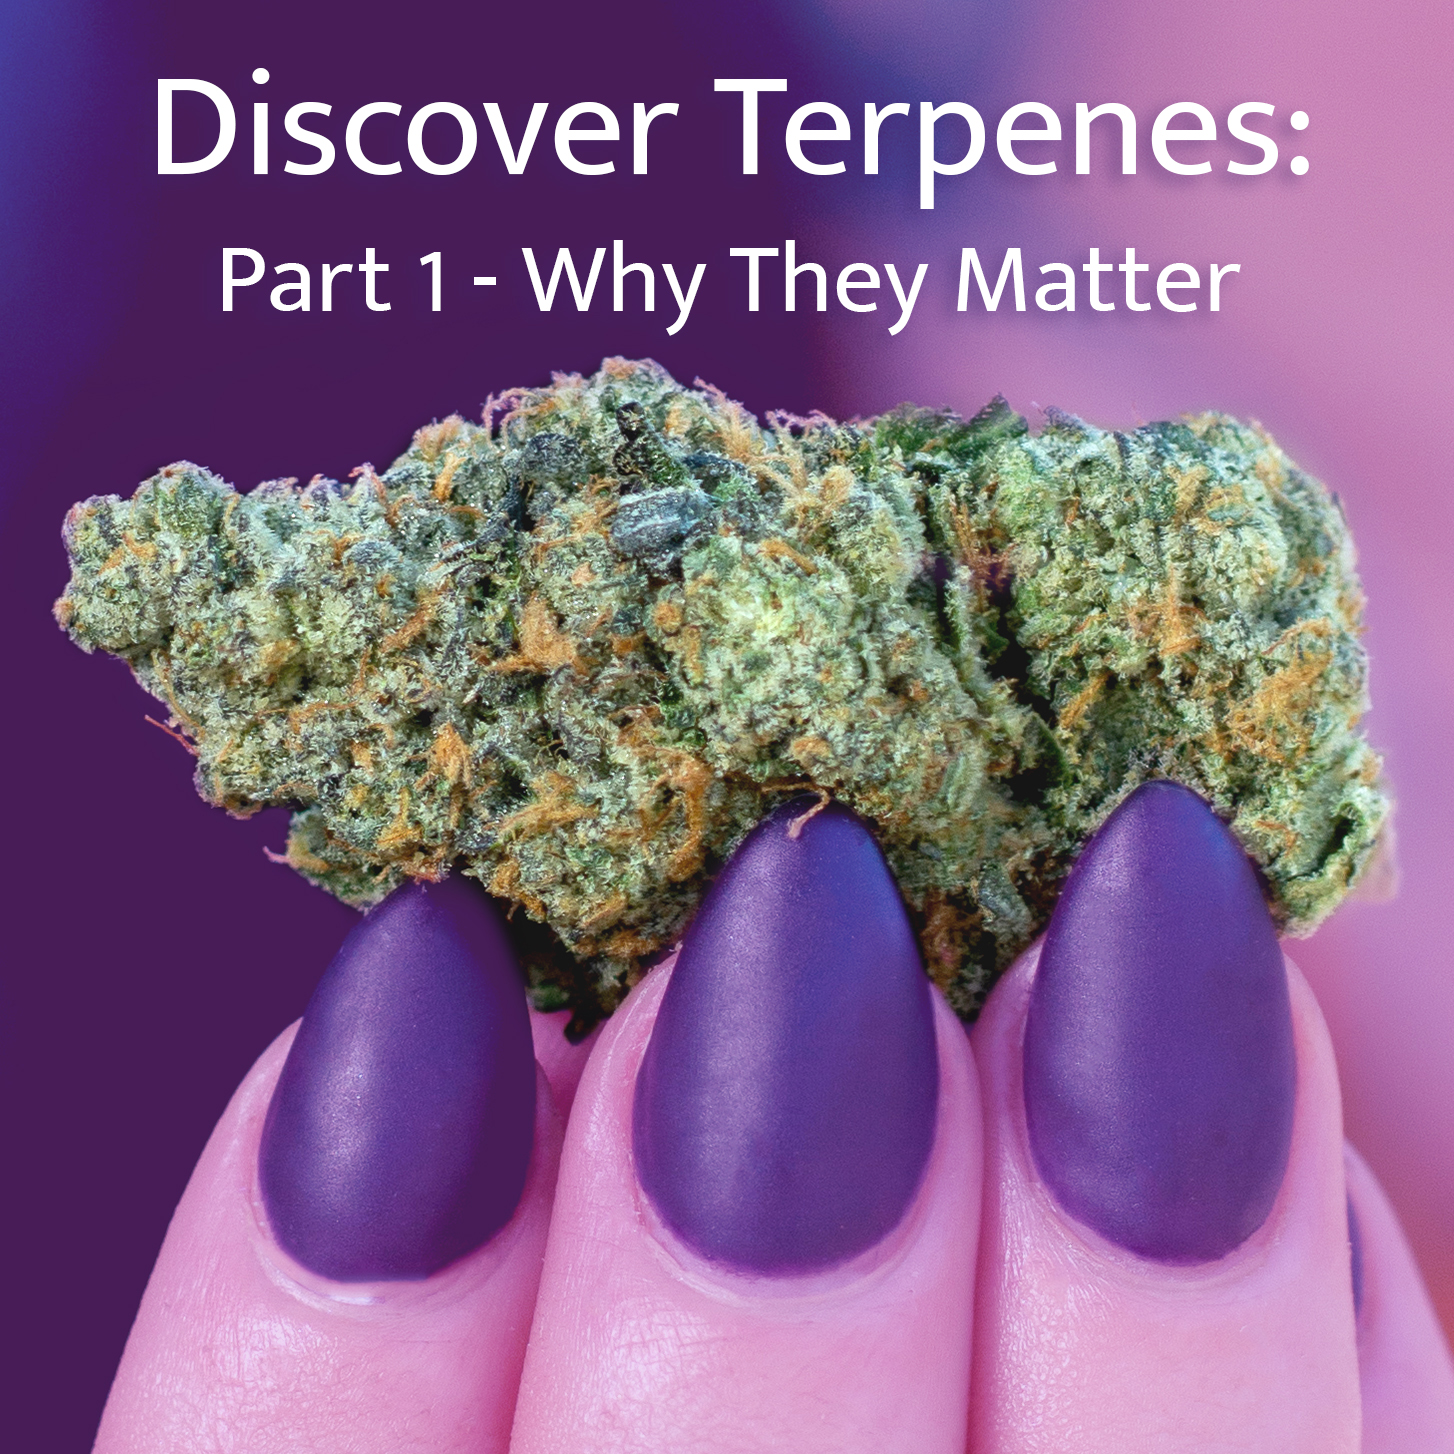 Discover Terpenes: Part 1 – Why They Matter